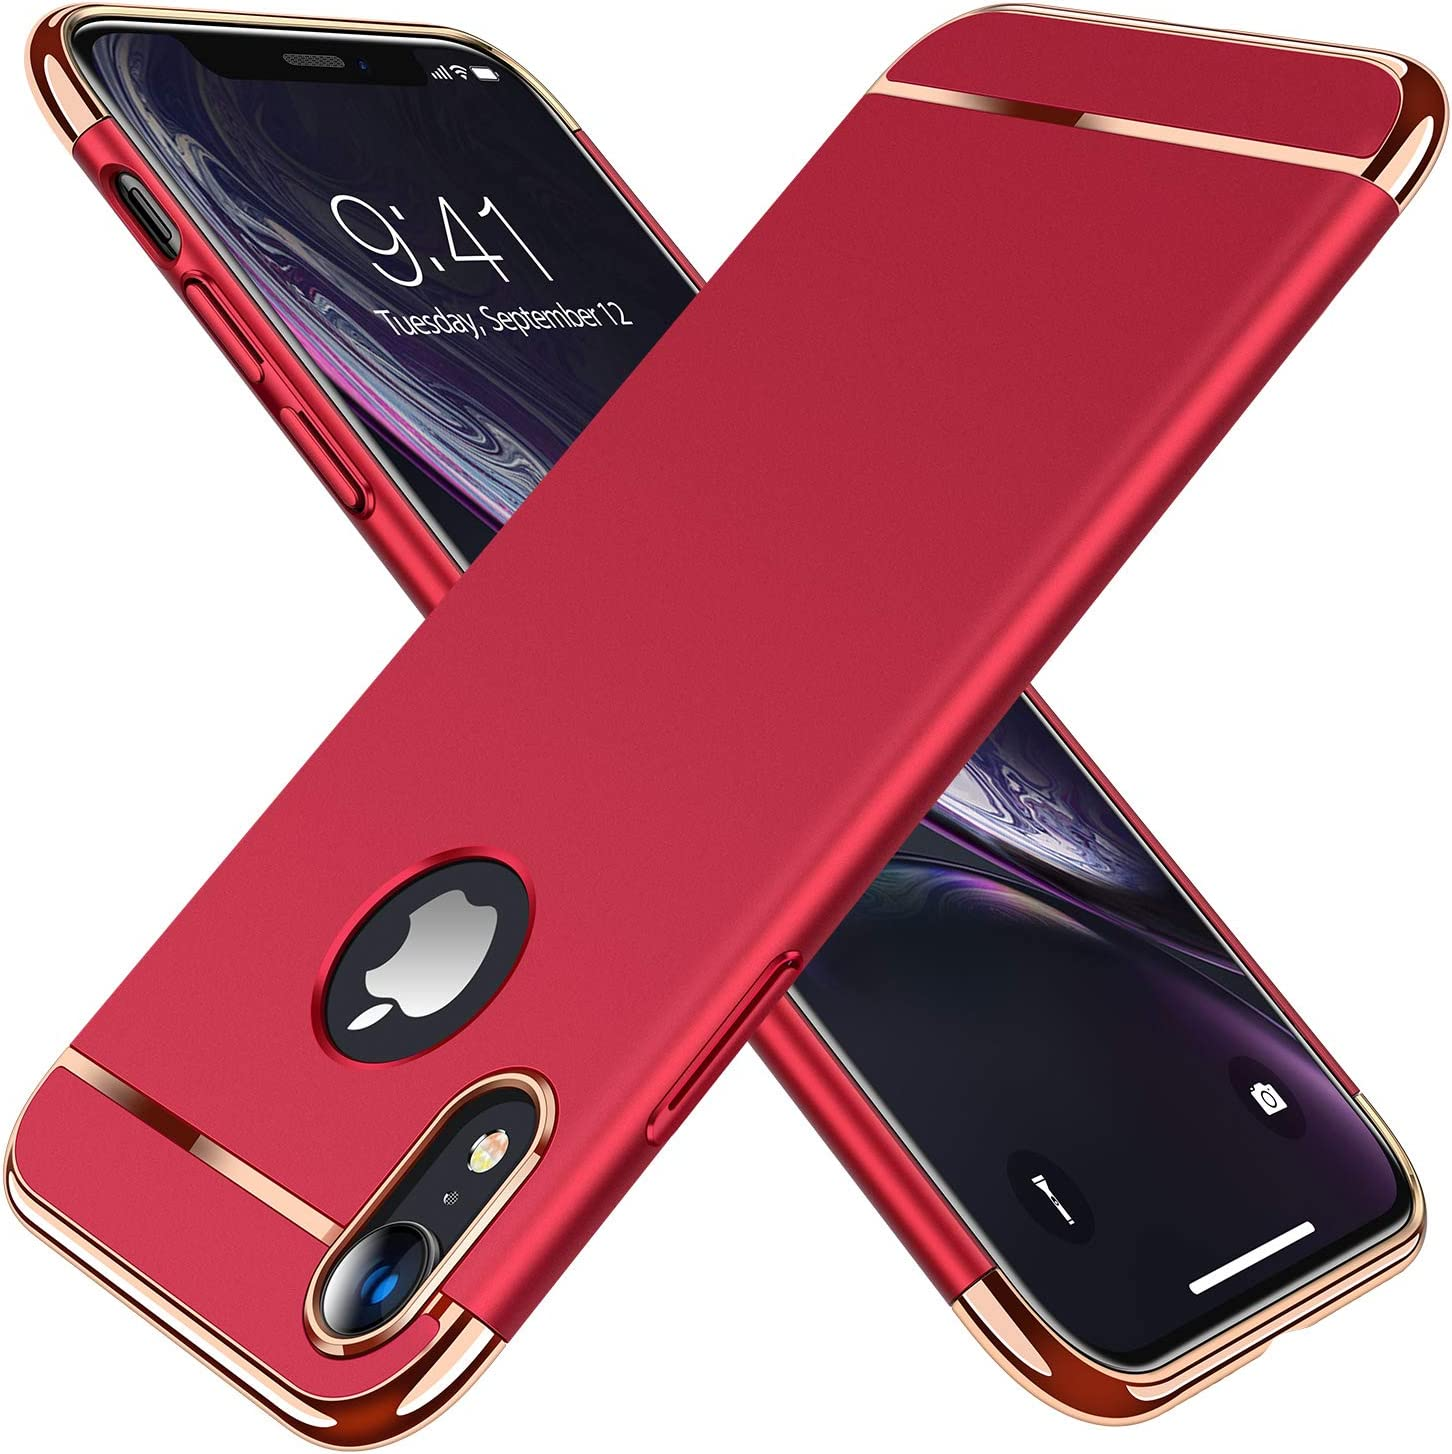 TORRAS Lock Series iPhone XR Case, 3-in-1 Luxury Hybrid Hard Plastic with Gold Trim Matte Finish Slim Thin Phone Case for iPhone XR 6.1 inches, Red